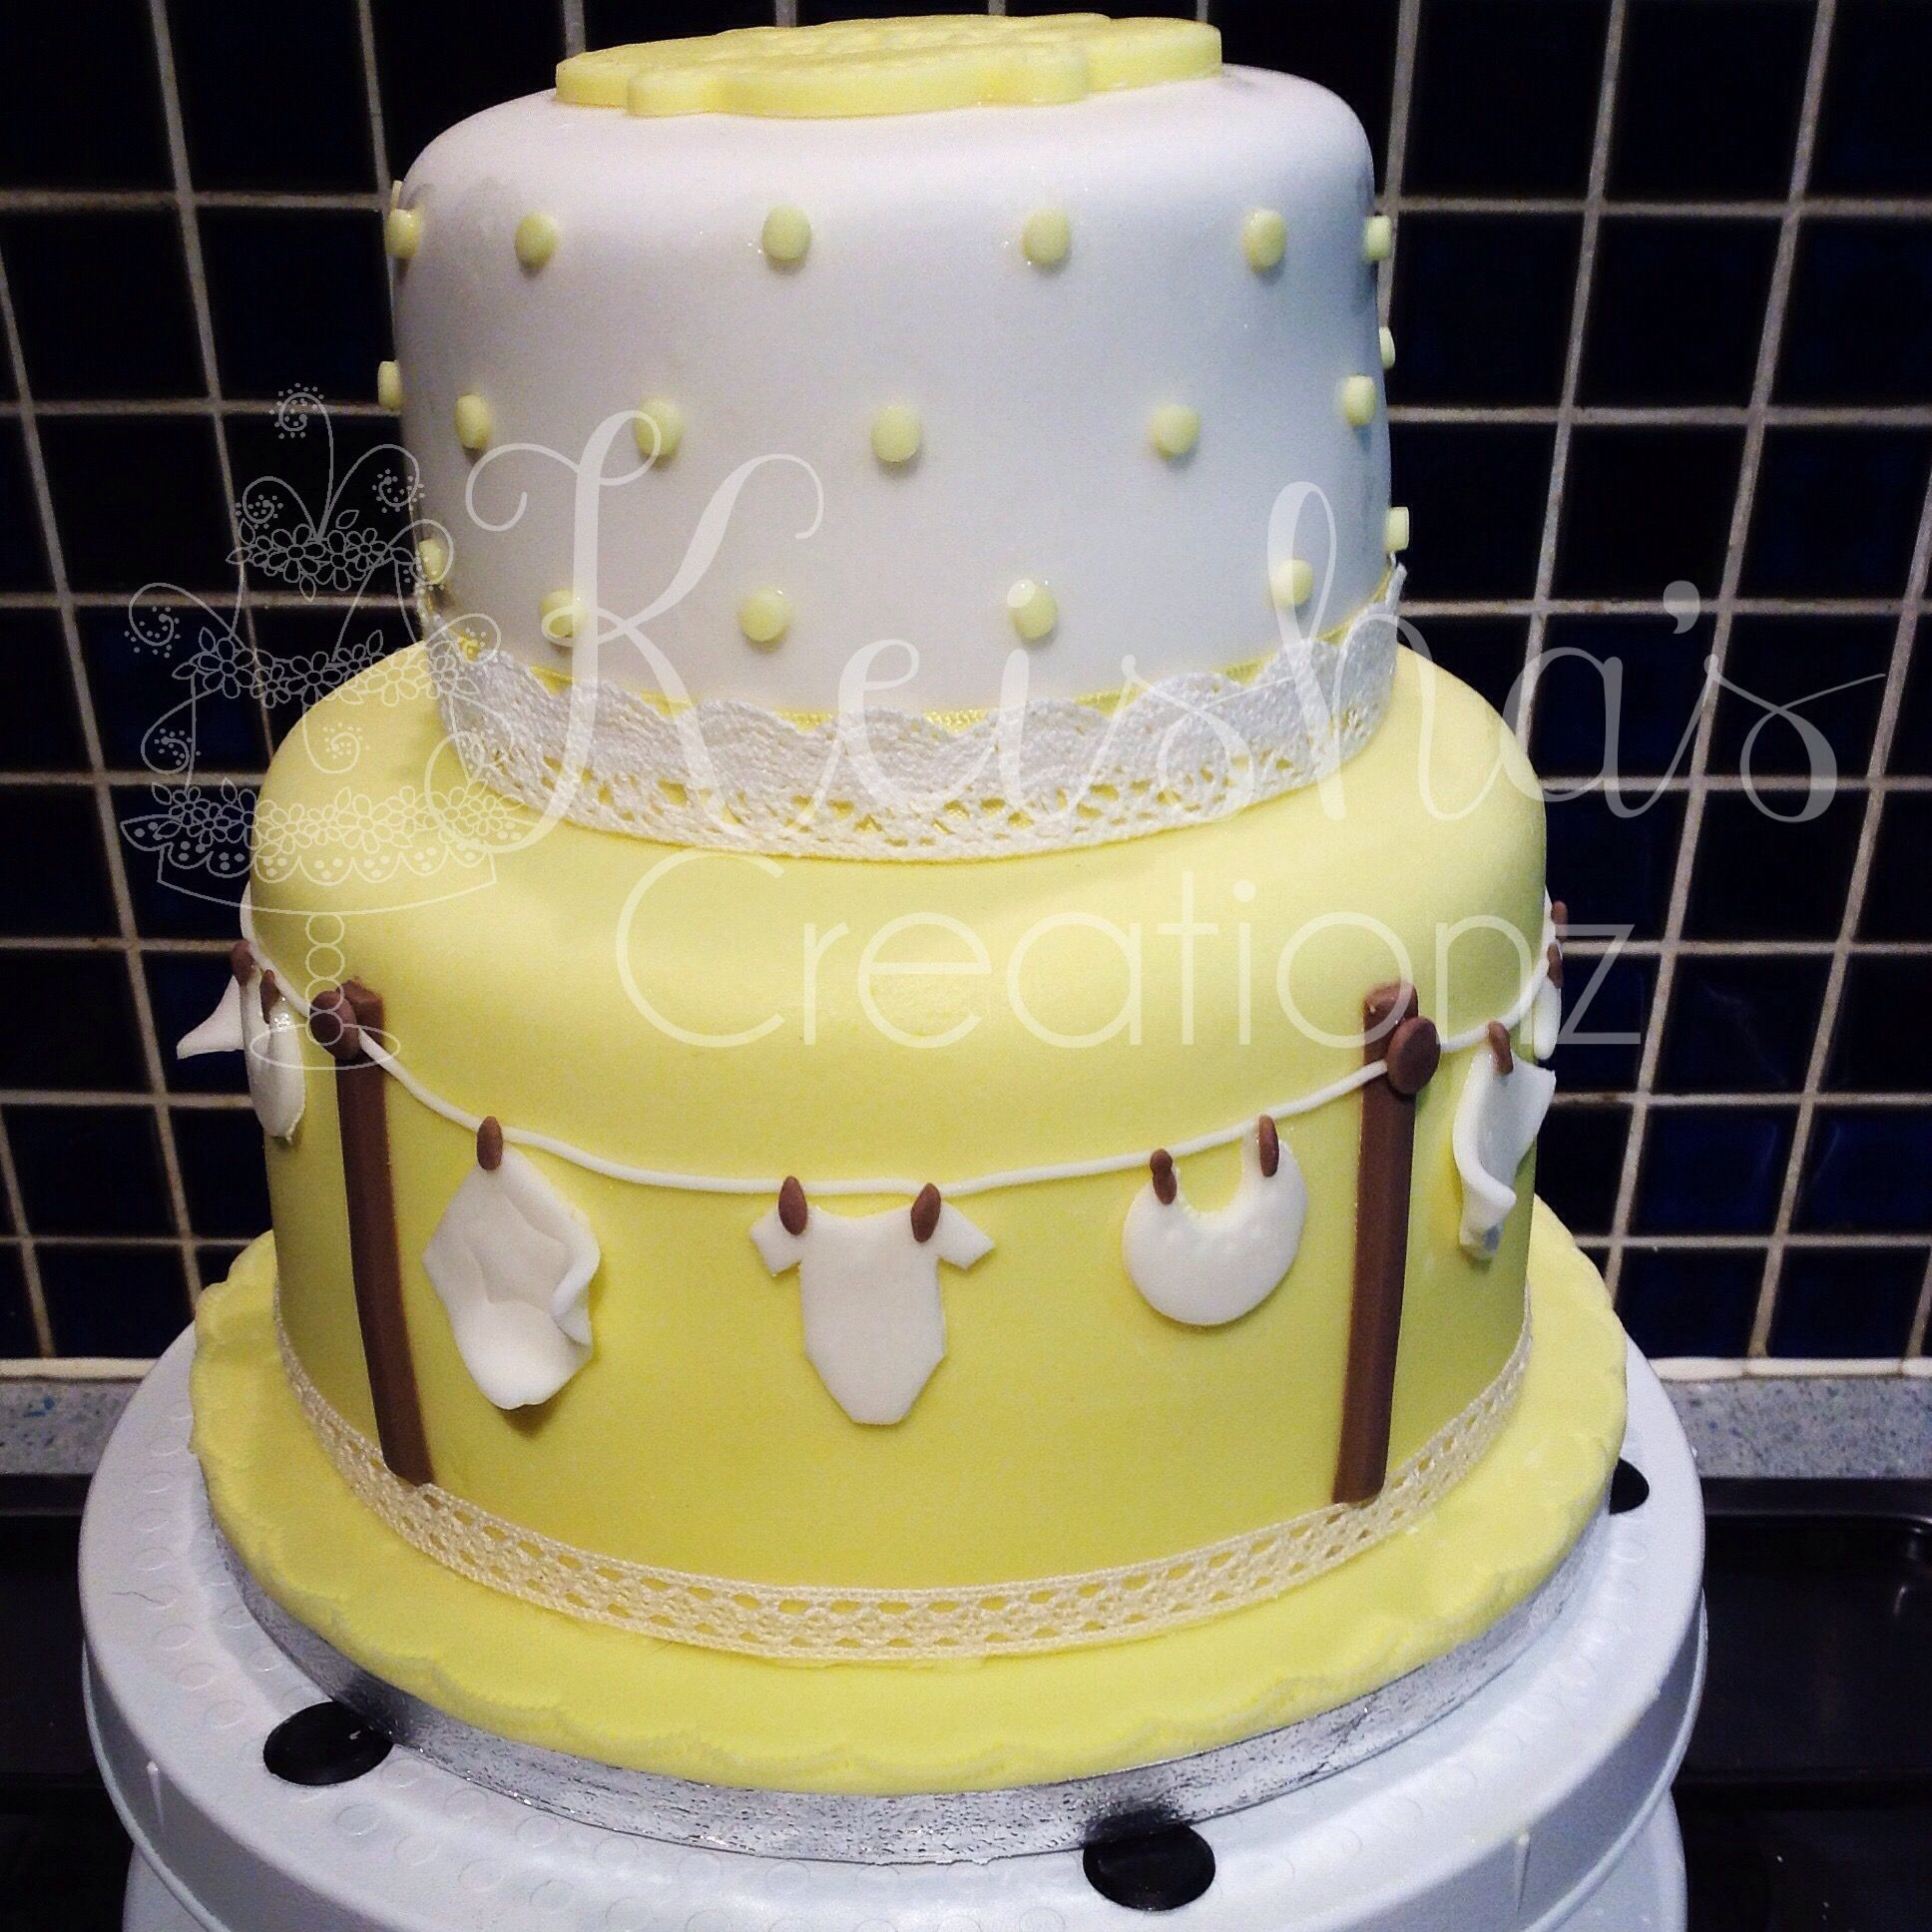 2 Tier Gender Neutral Baby Shower Cake By Keisha S Creationz Featuring Miniature Washing Line And Baby Clothes Baby Shower Cakes Cupcake Cakes Cake